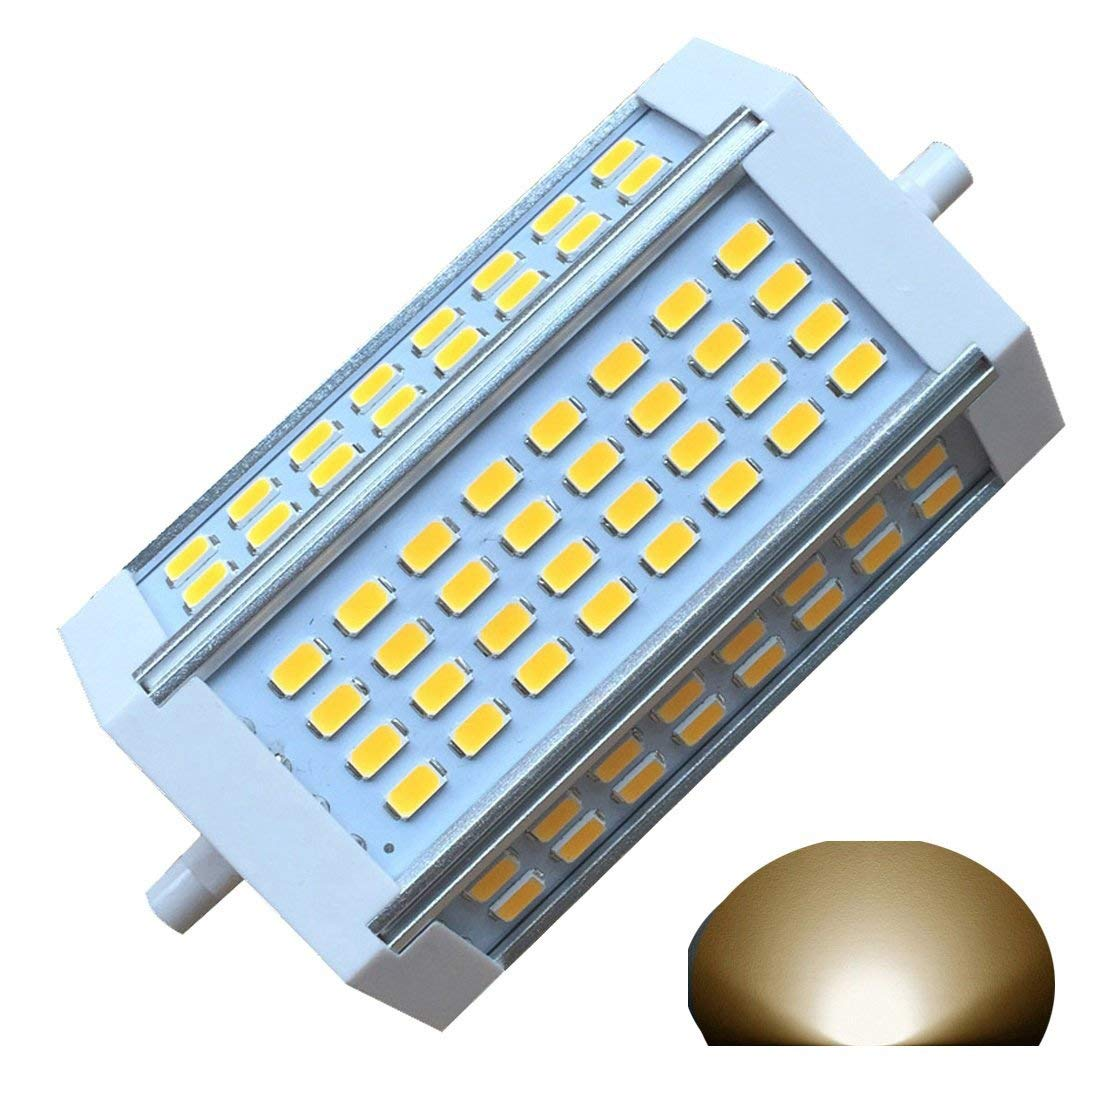 qlee R7S LED J118 118mm Dimmable Bulb 30W Warm Light 3000k AC120V 3000LM Double Ended J LED Floodlight For R7S 200W 300w 400w Halogen Replacement (3000k warm light)